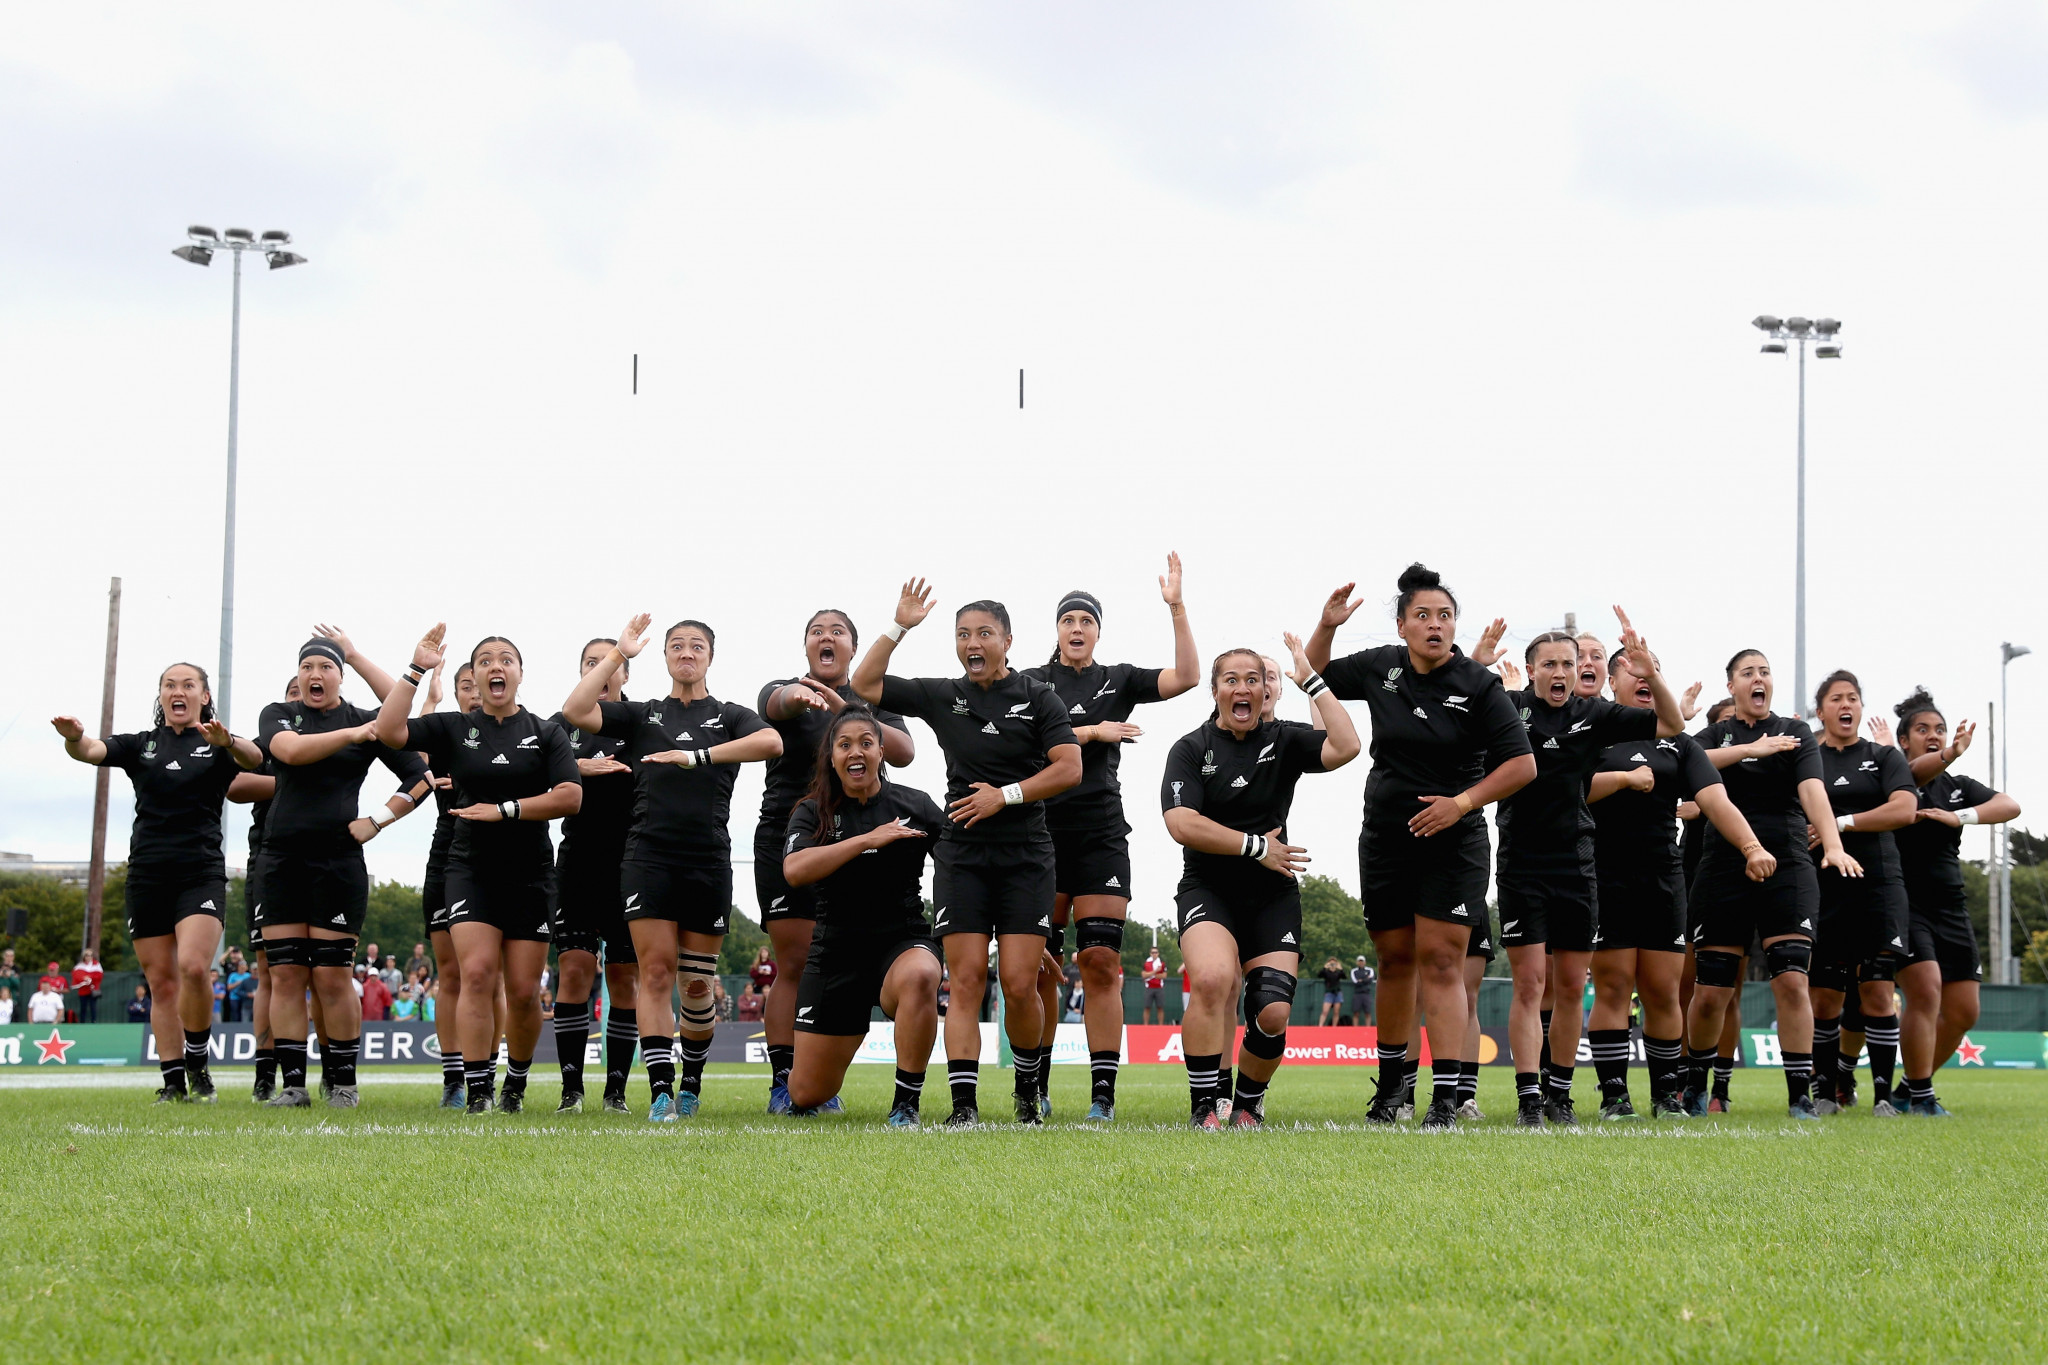 New Zealand, reigning world champions, are hosting the women's 2021 Rugby World Cup ©Getty Images